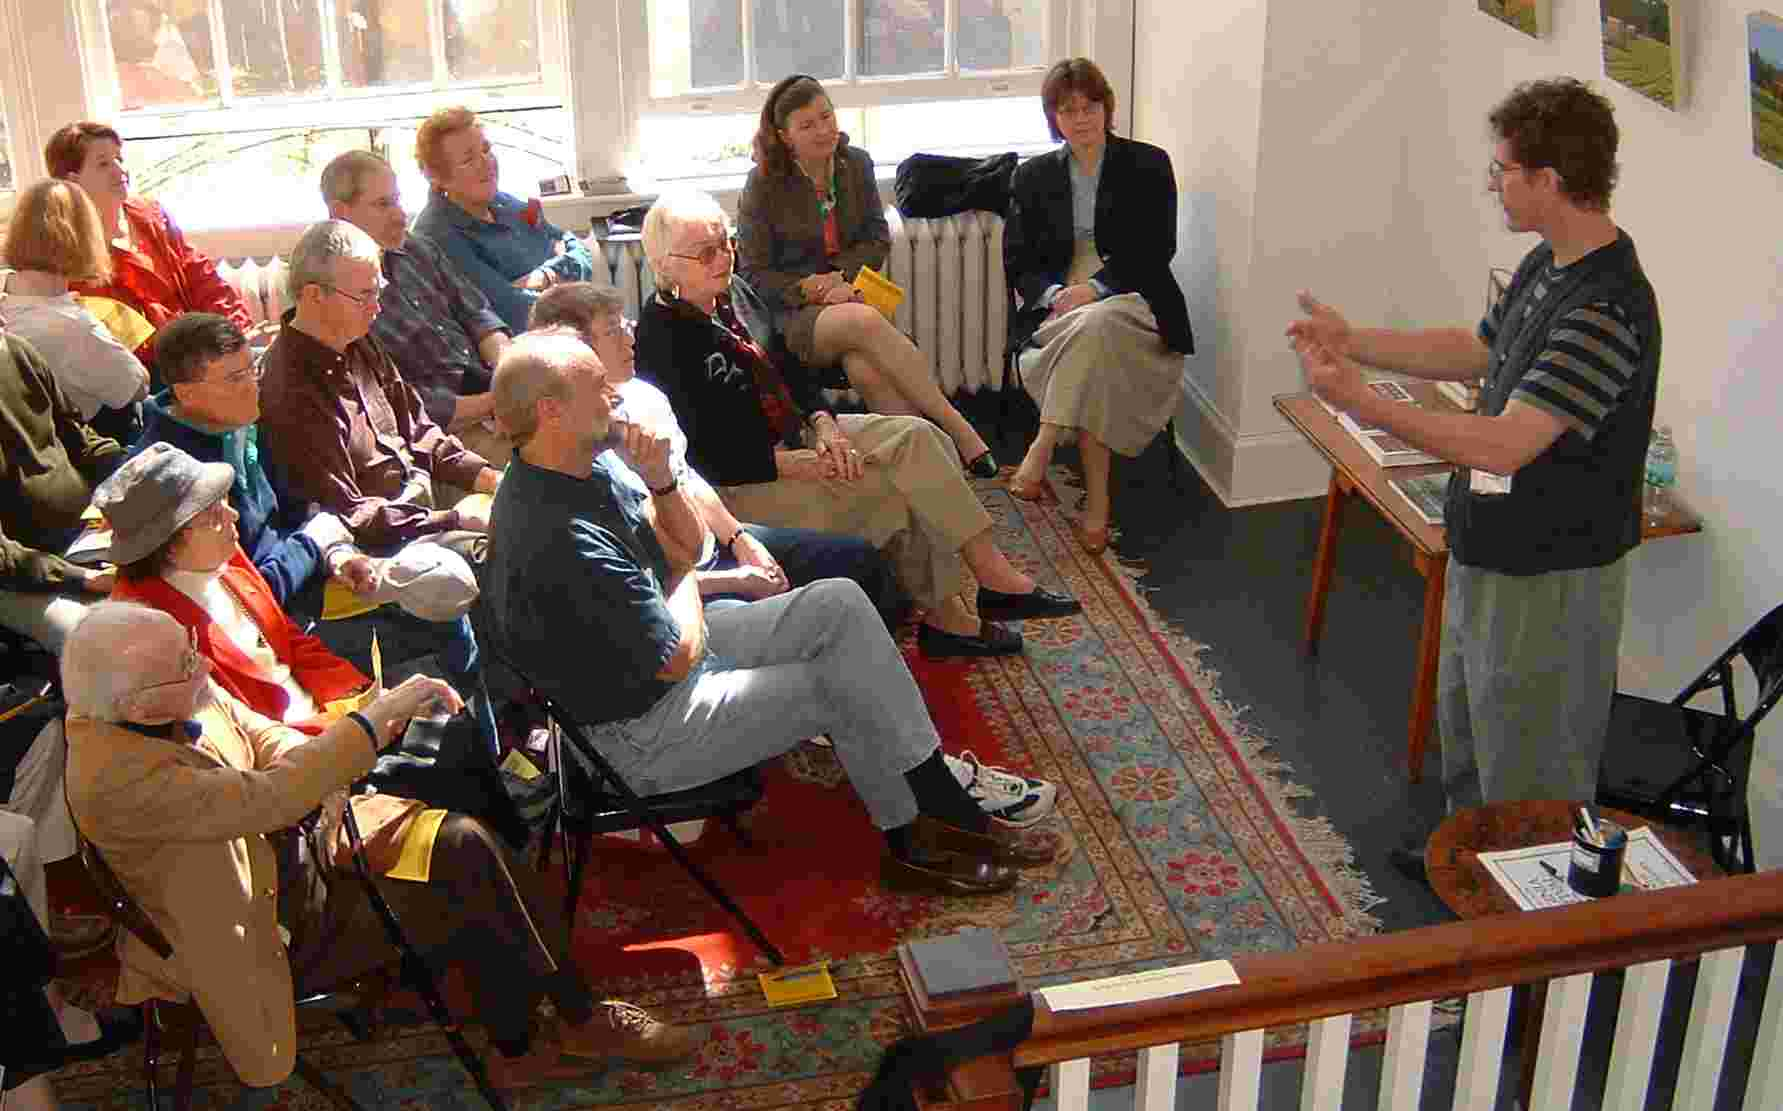 Dean King at 2004 Virginia Festival of the Book